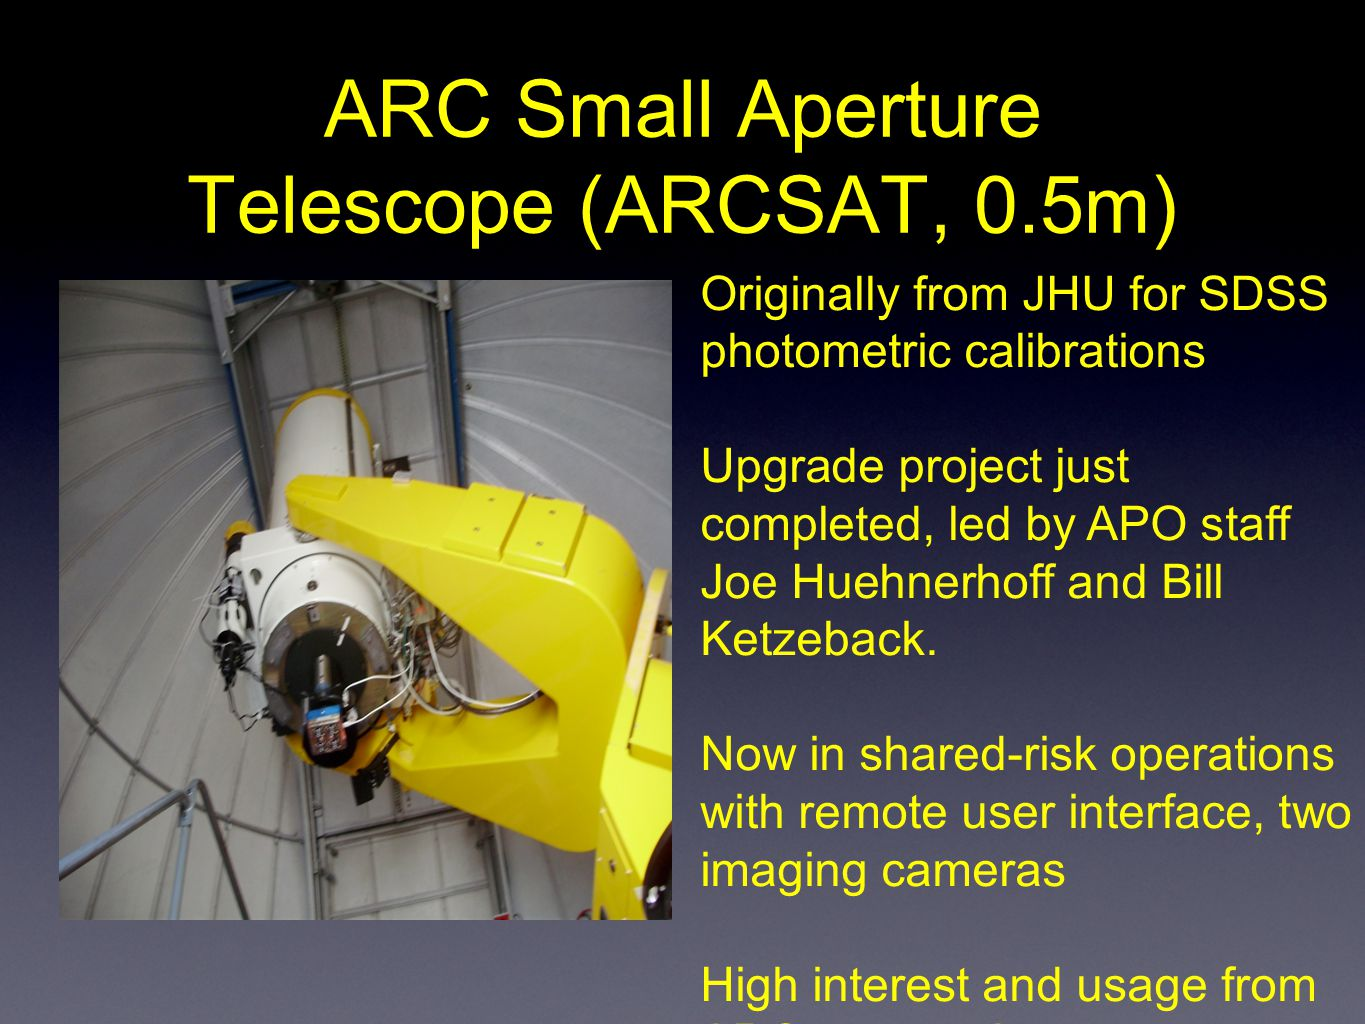 ARC Small Aperture Telescope (ARCSAT, 0.5m) Originally from JHU for SDSS photometric calibrations Upgrade project just completed, led by APO staff Joe